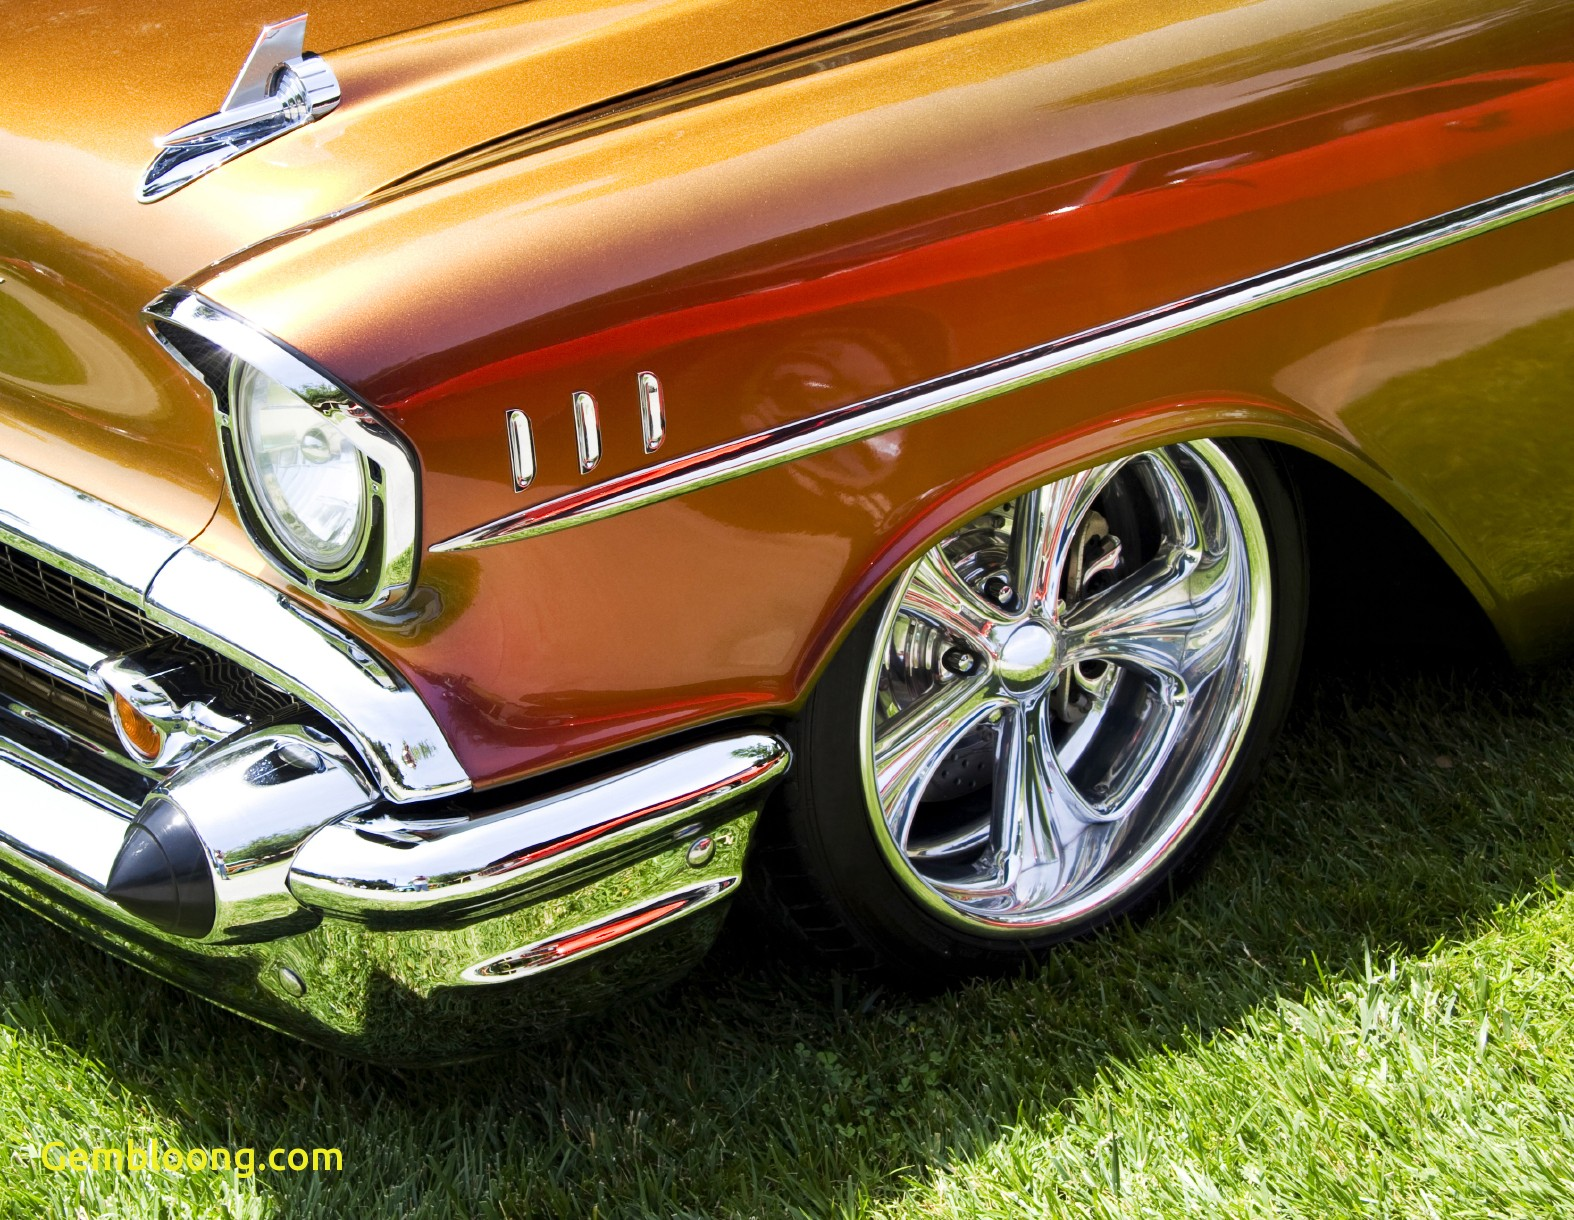 we can also import drag cars and drag bikes race cars and race bikes off road american muscle cars for sale